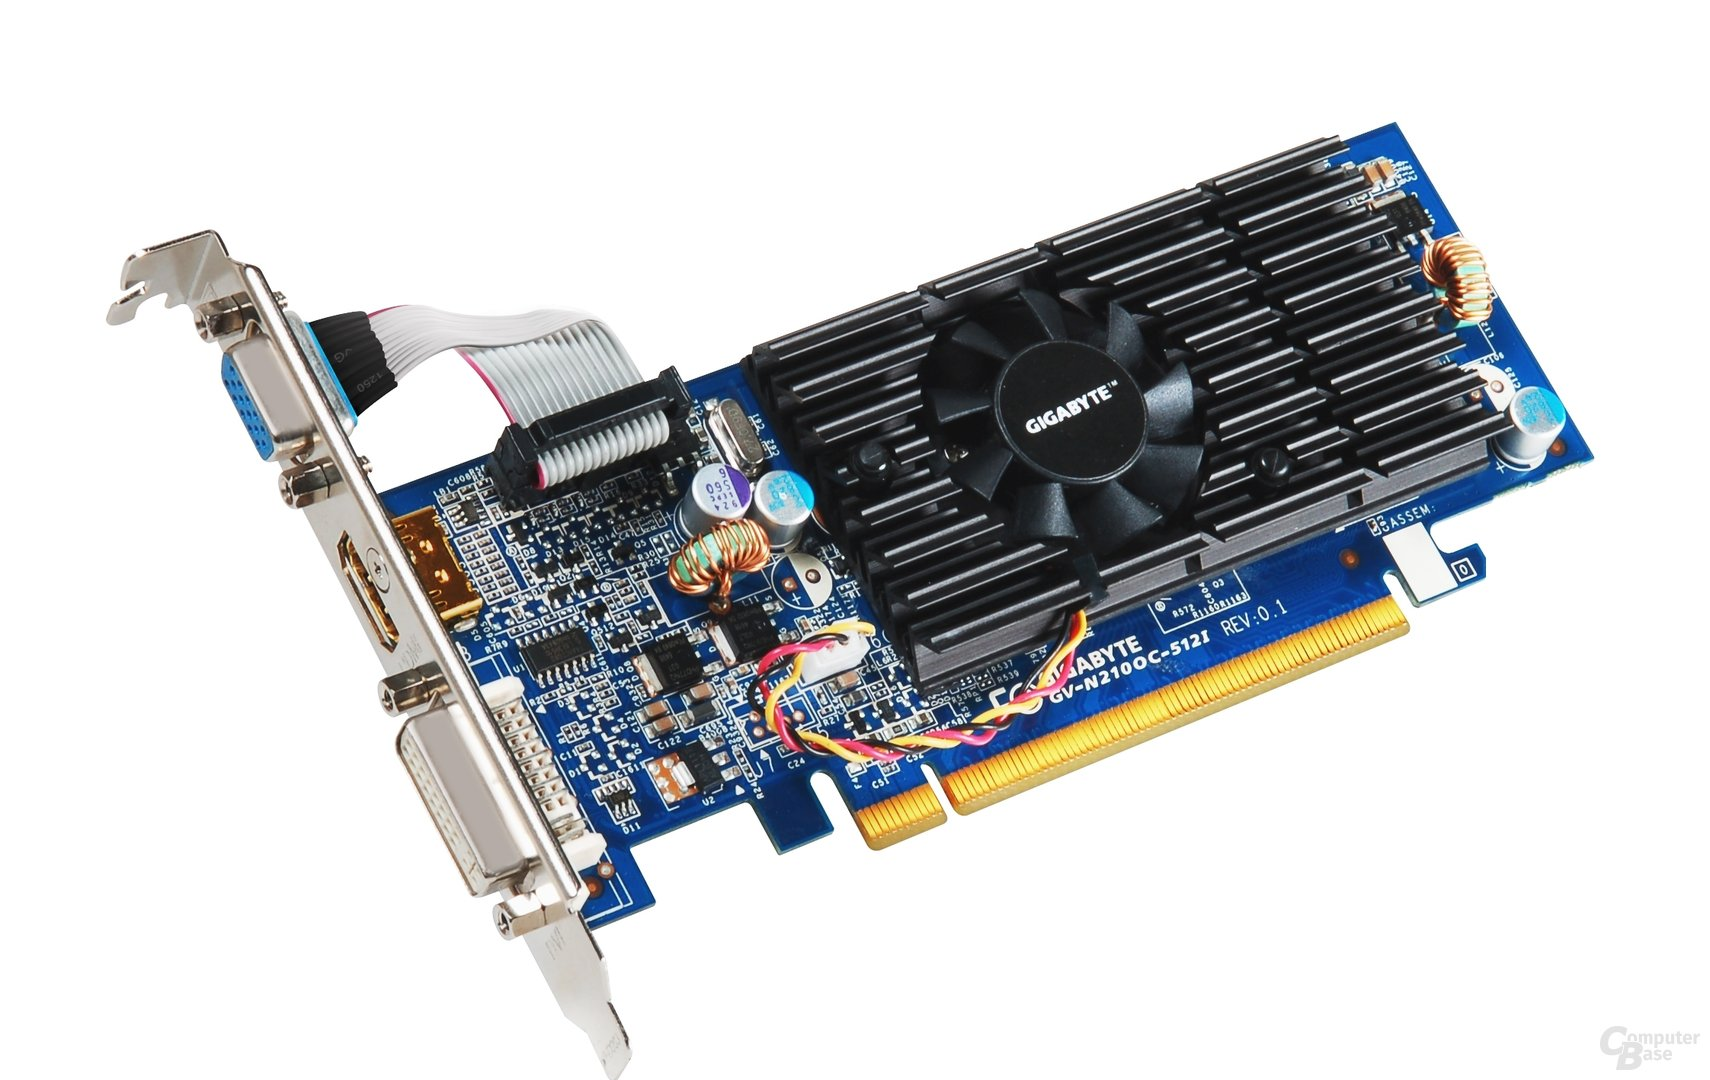 Gigabyte GeForce 210